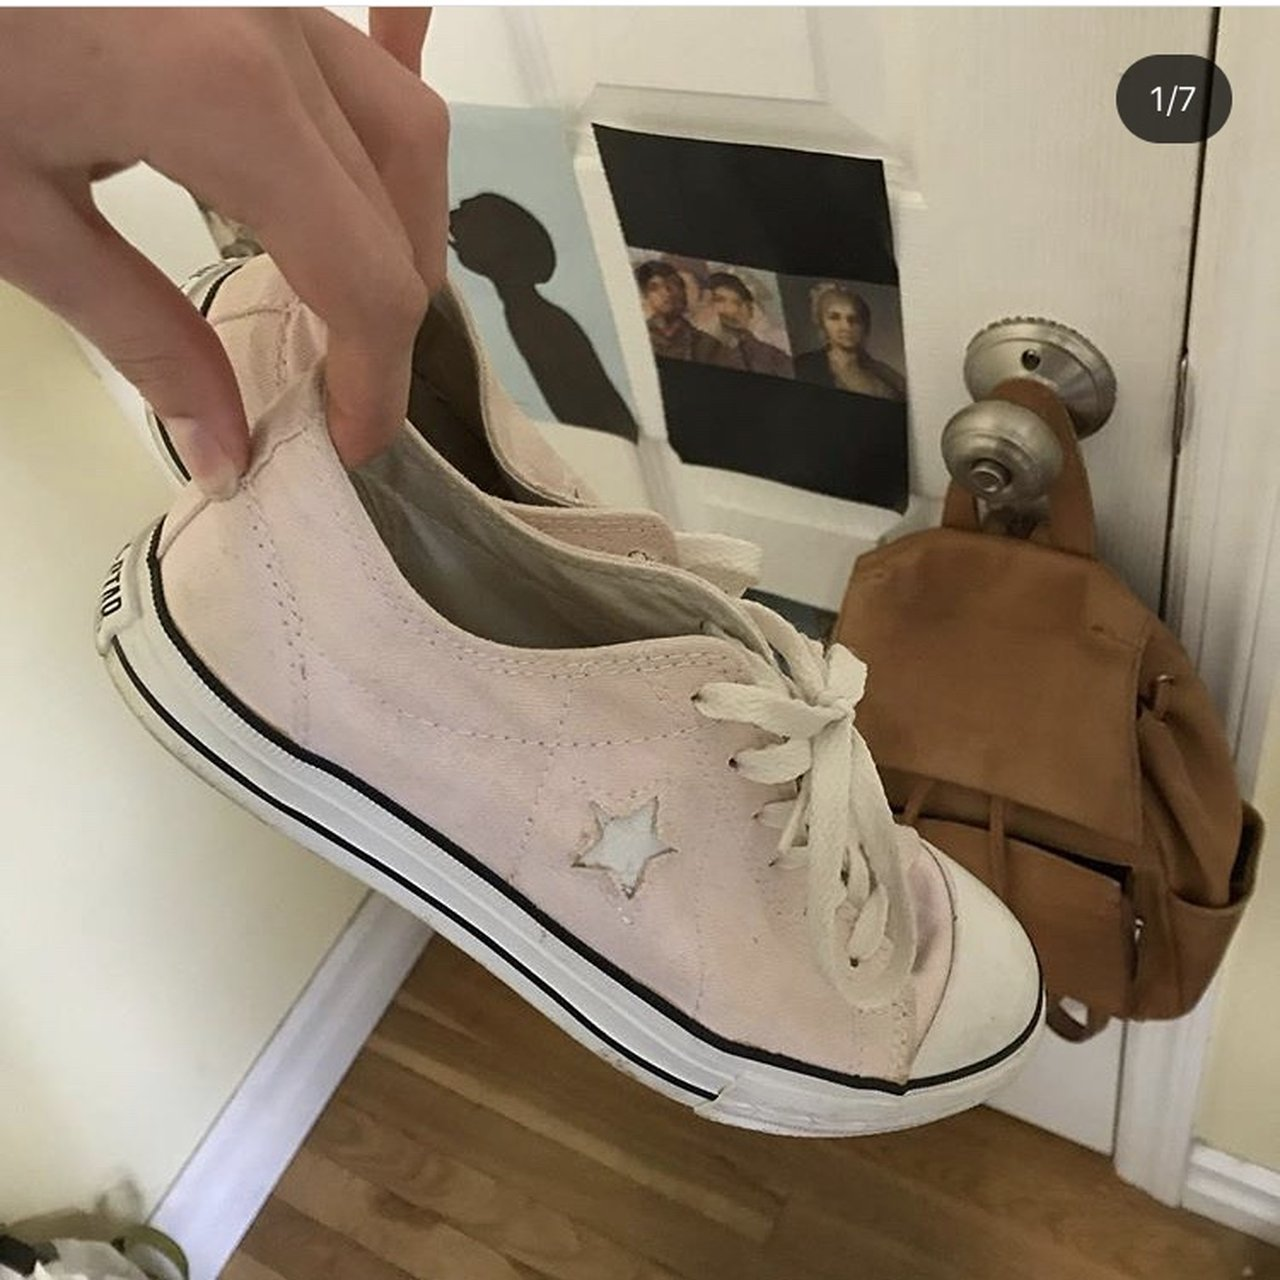 PINK converse one star🌱🌱🌱 true.  11. Converse size 3.5 youth equivalent 5d4cae7d3